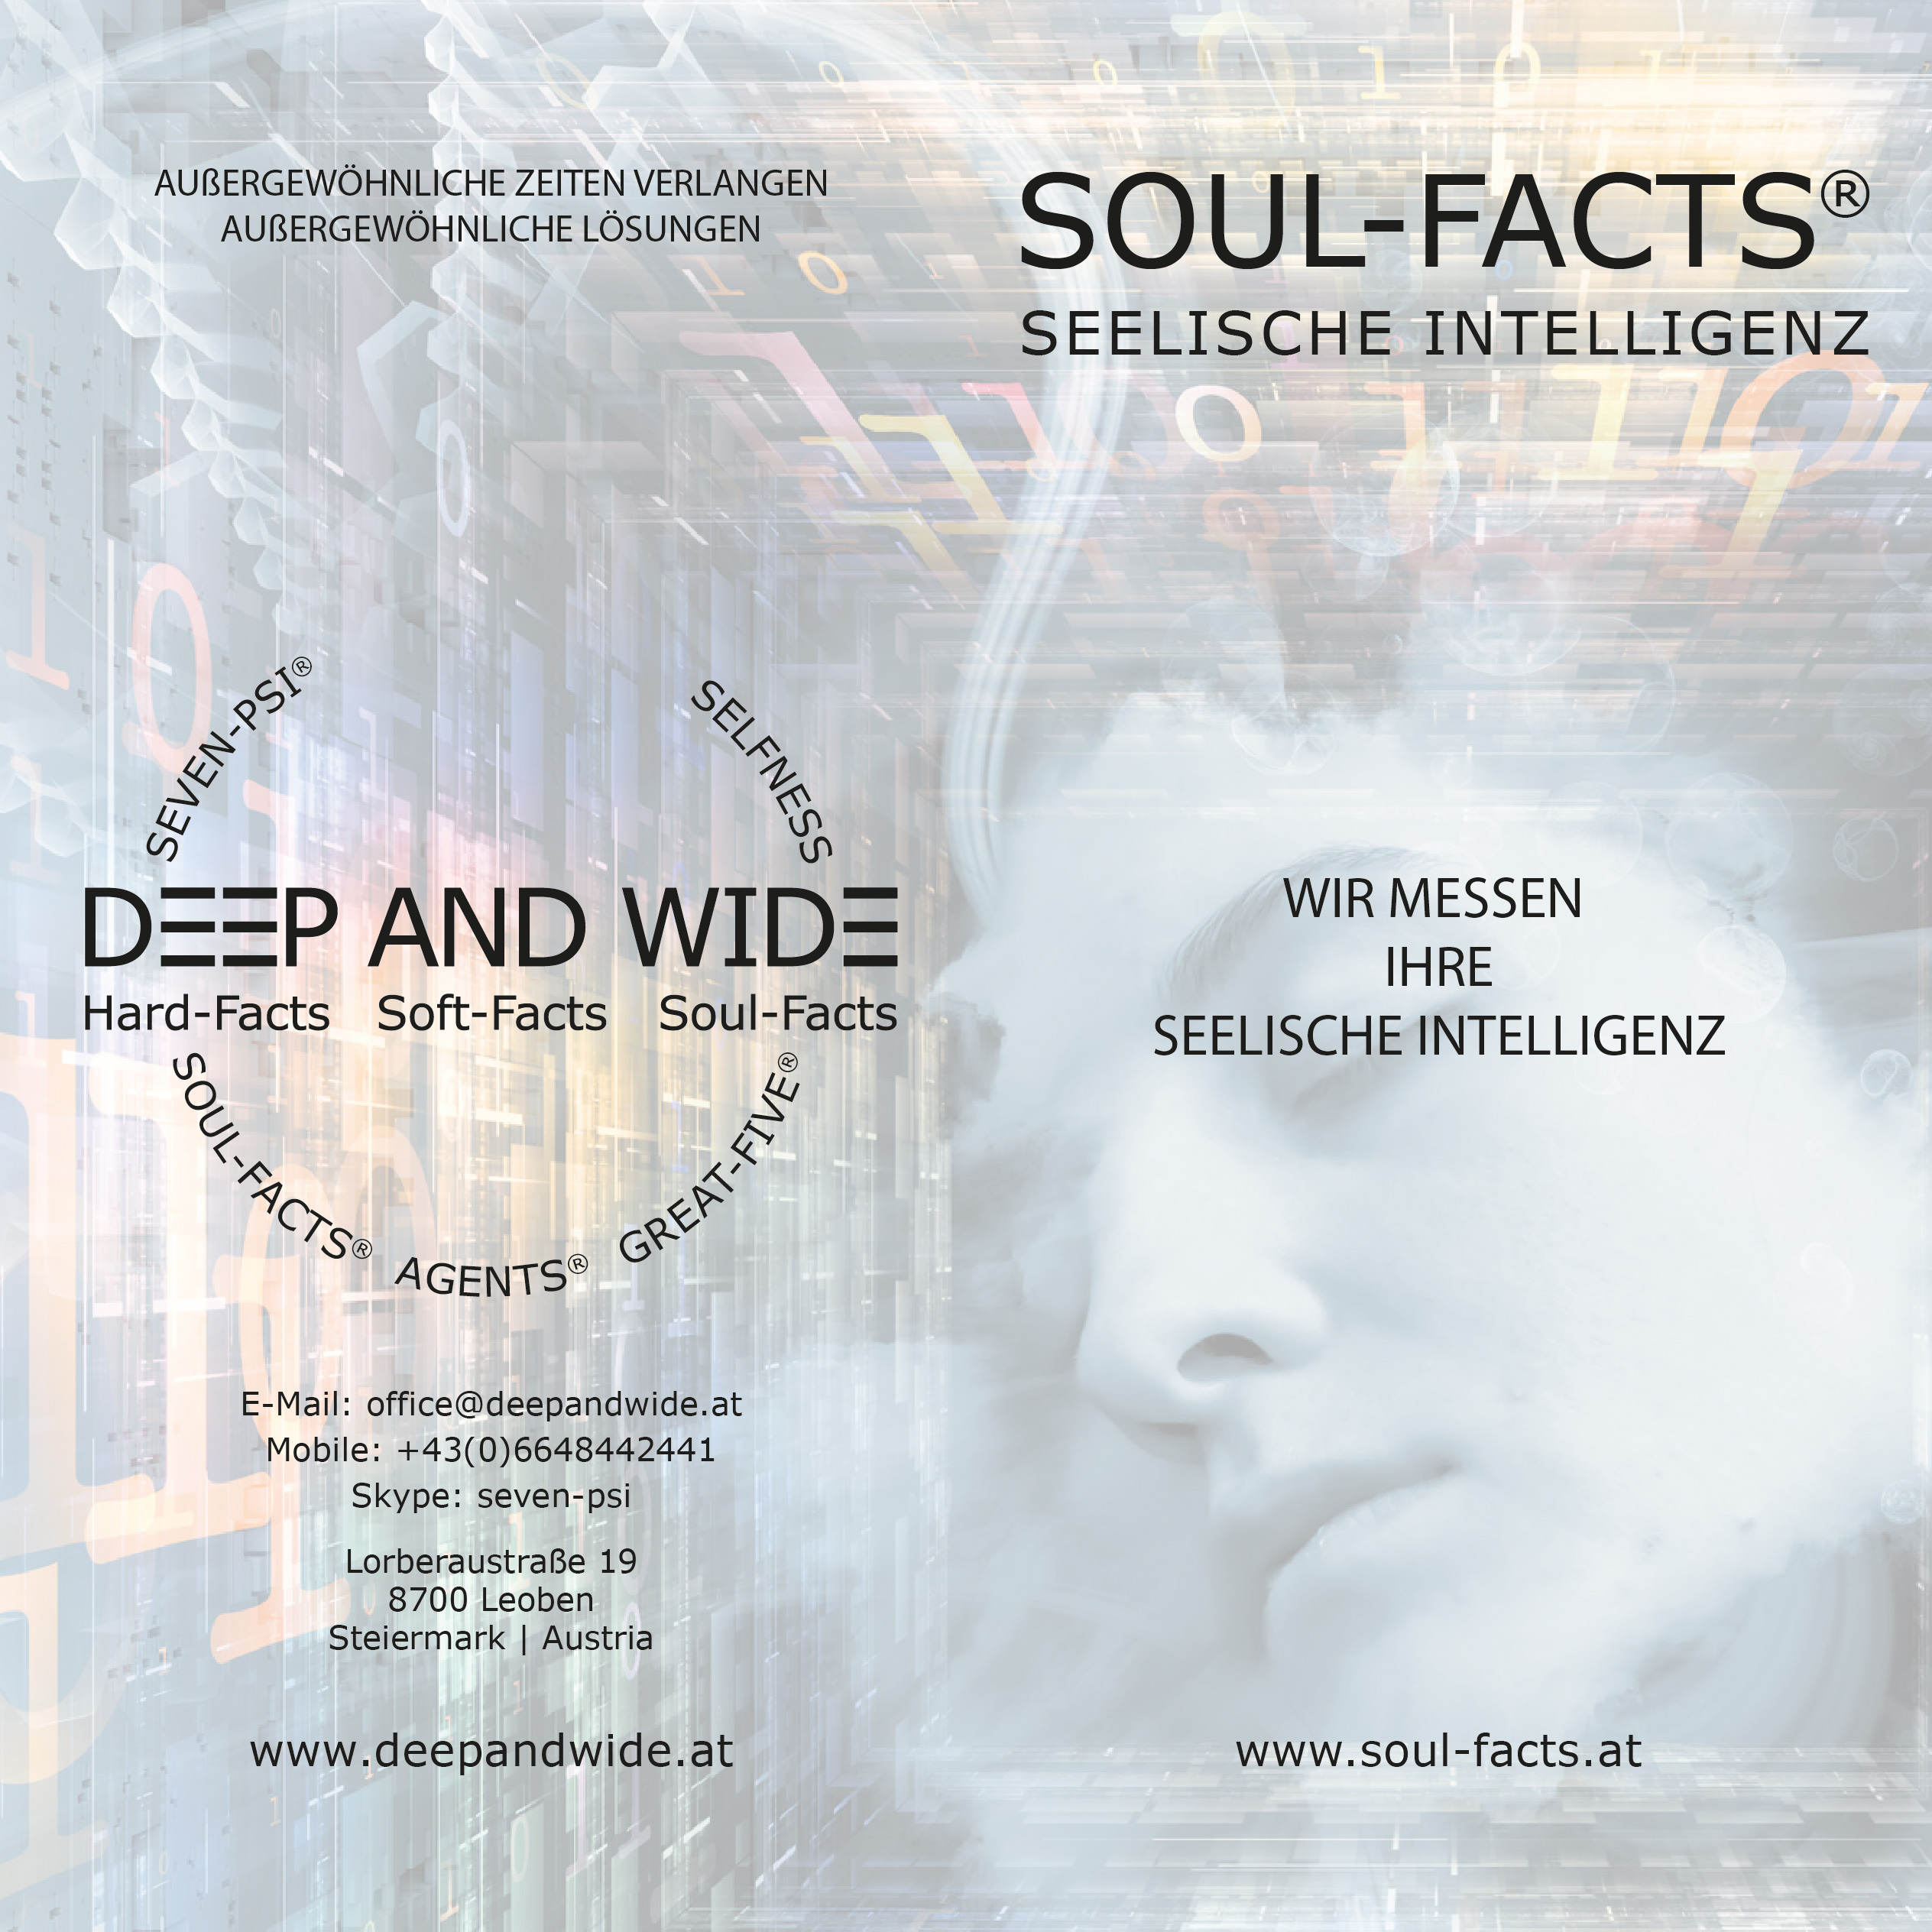 SOUL-FACTS